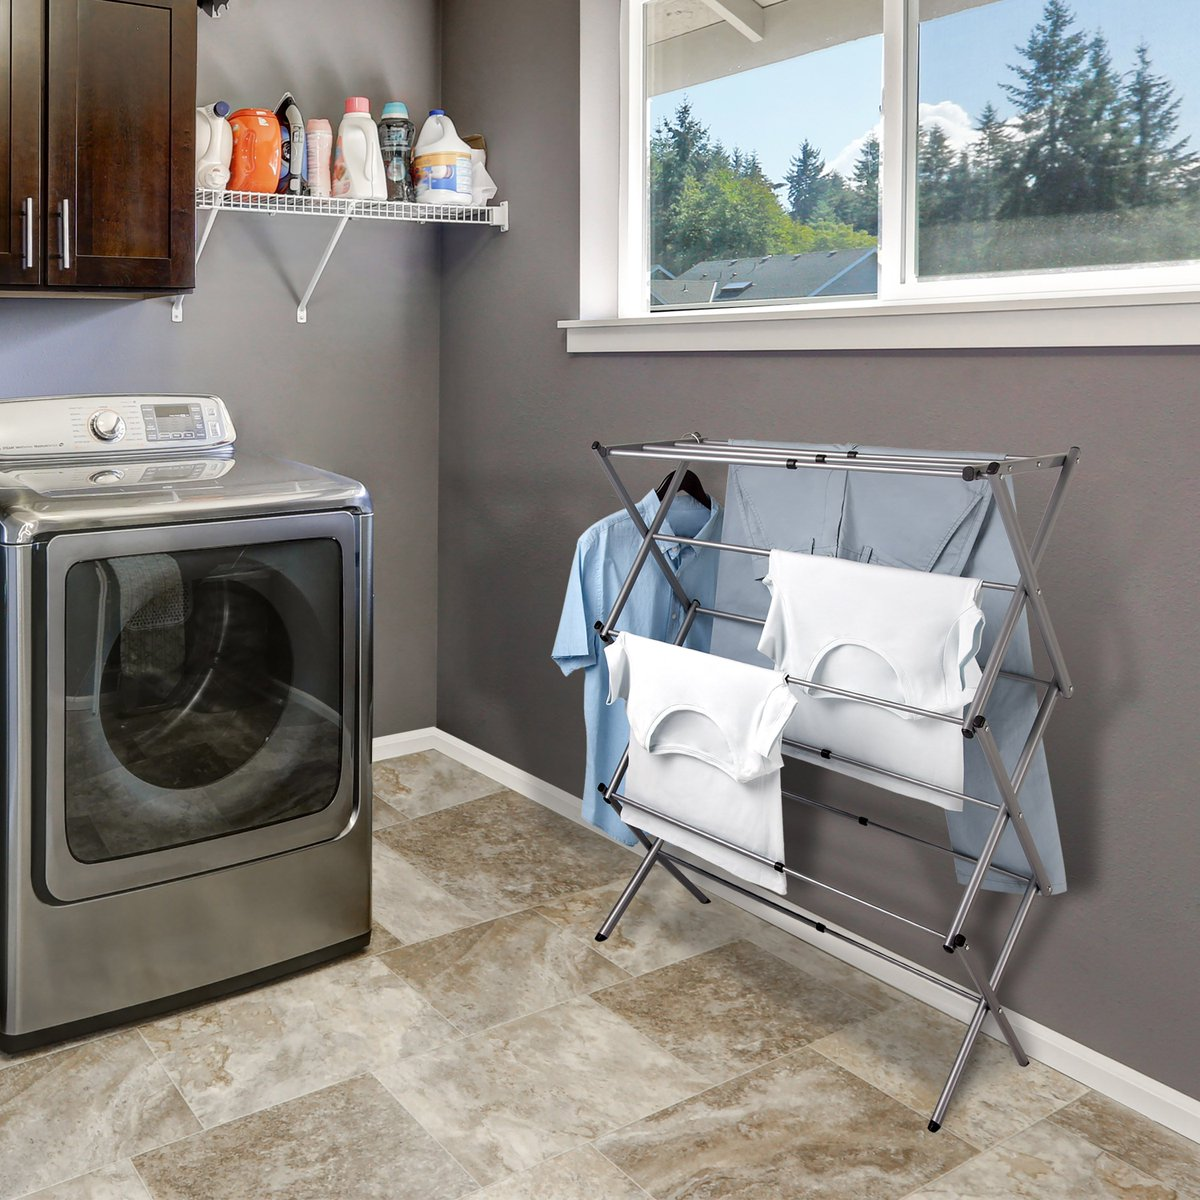 "The Greenway GFR1500CTN Expandable Accordion Drying Rack might look like a normal rack at first glance, but this rack is expandable up to 30"" wide! It is a traditional rack design that is ready to tackle your family's changing laundry needs with ease. https://t.co/aEEJzdUXnM https://t.co/BmvsQexhvh"